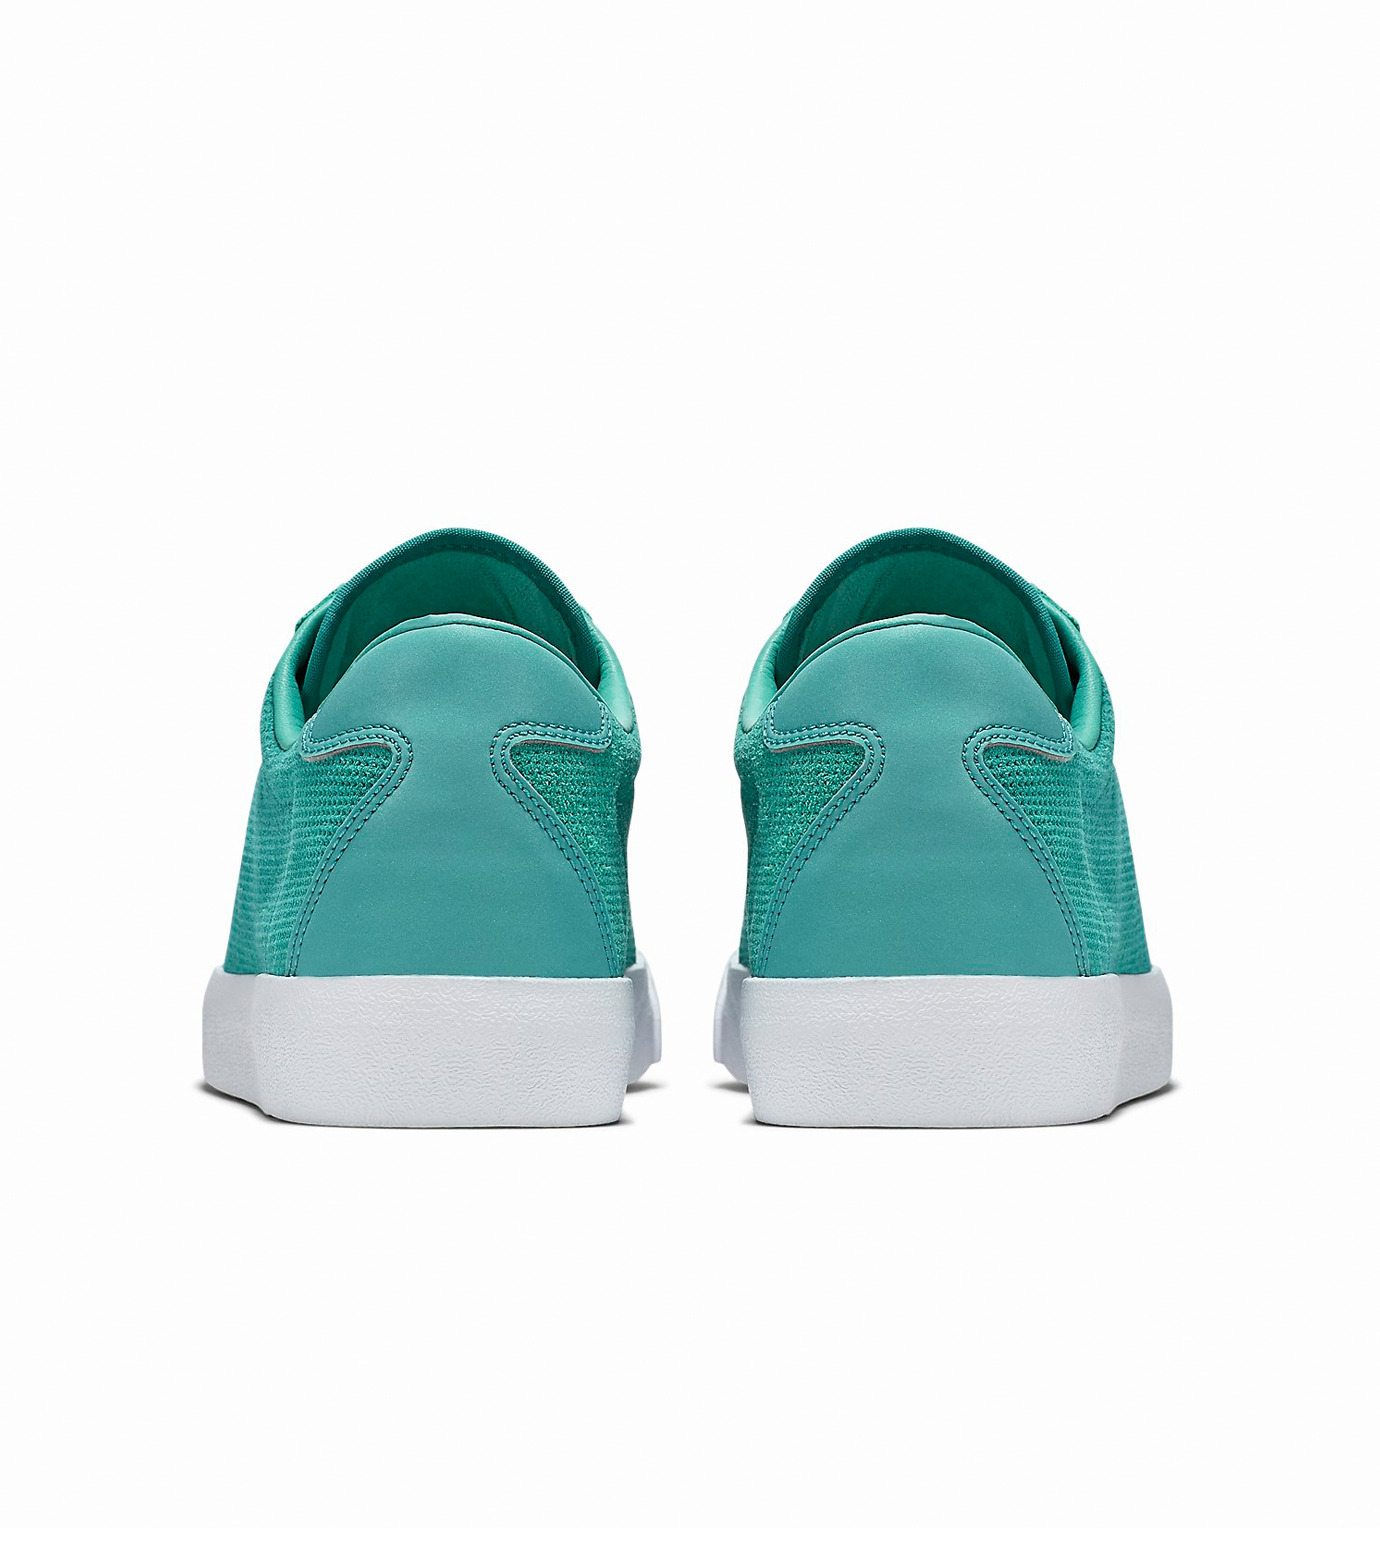 NIKE(ナイキ)のMATCH CLASSIC SUEDE-GREEN(シューズ/shoes)-864718-300-22 拡大詳細画像5